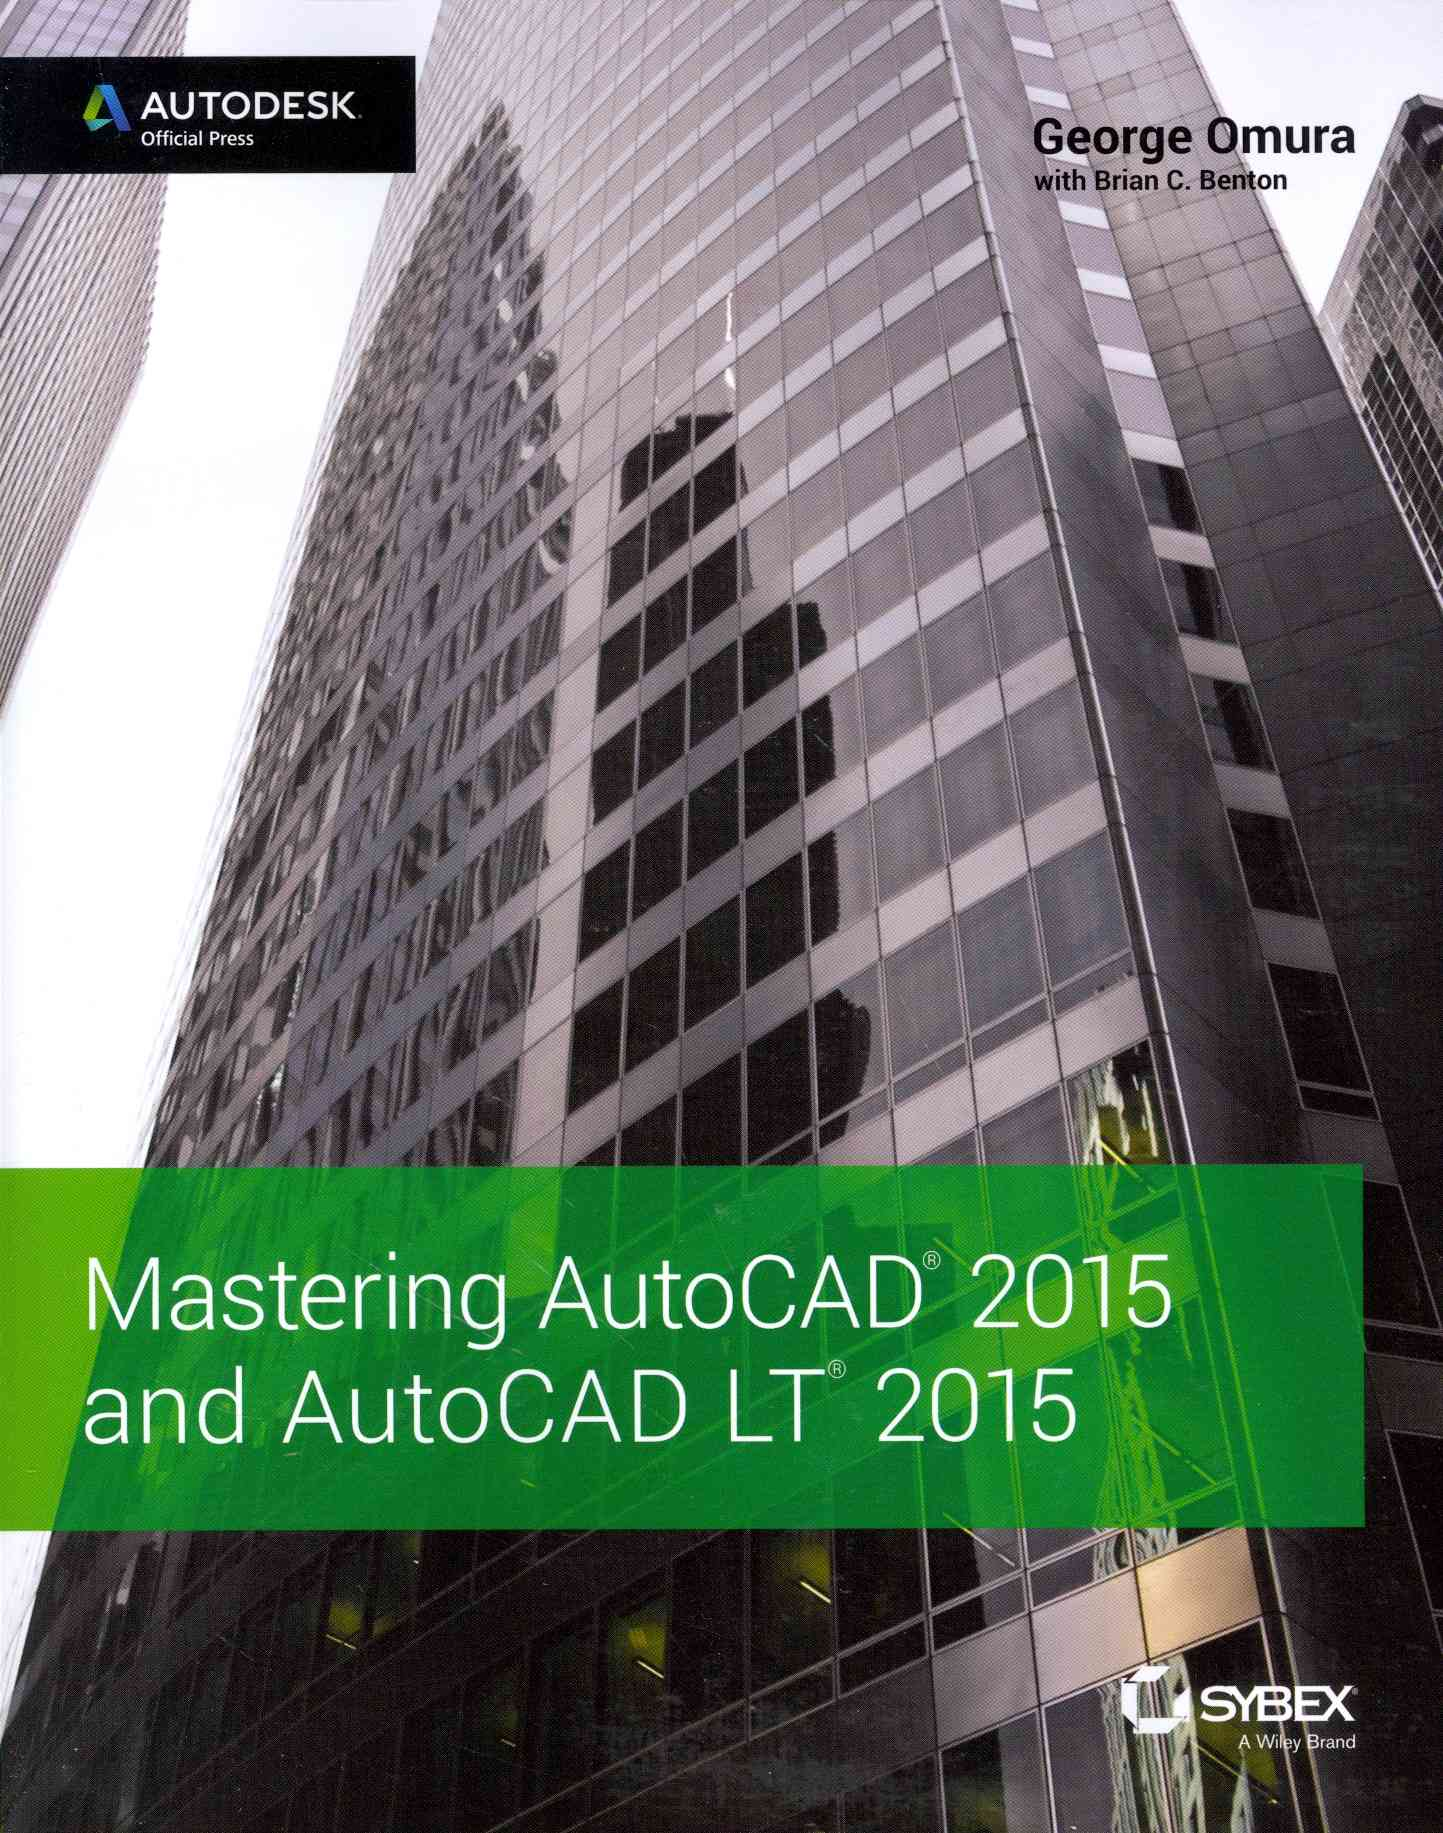 Mastering Autocad 2015 and Autocad Lt 2015 By Omura, George/ Benton, Brian C.